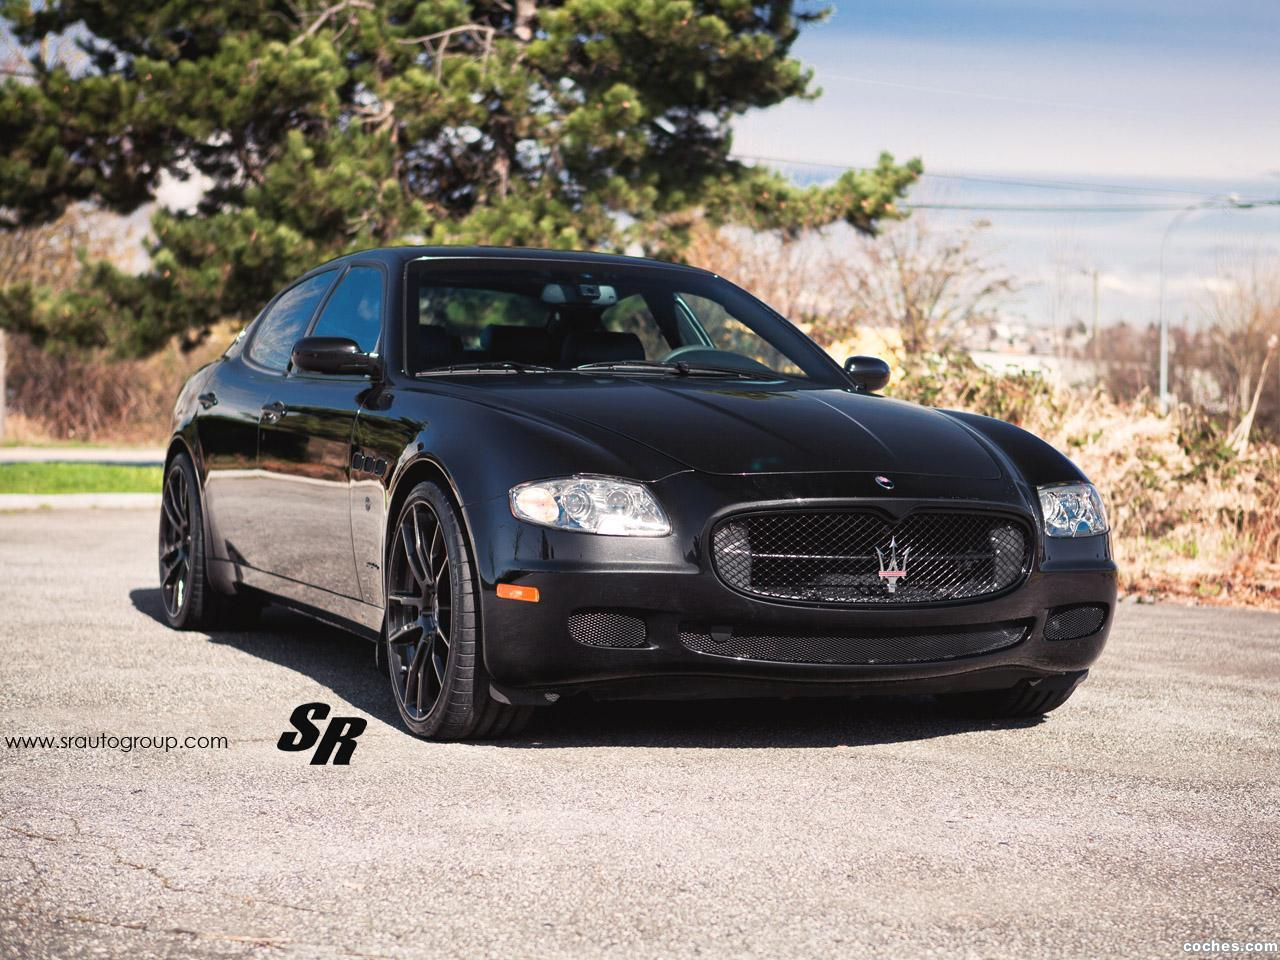 sr-auto_maserati-quattroporte-project-black-diamond-2013_r6